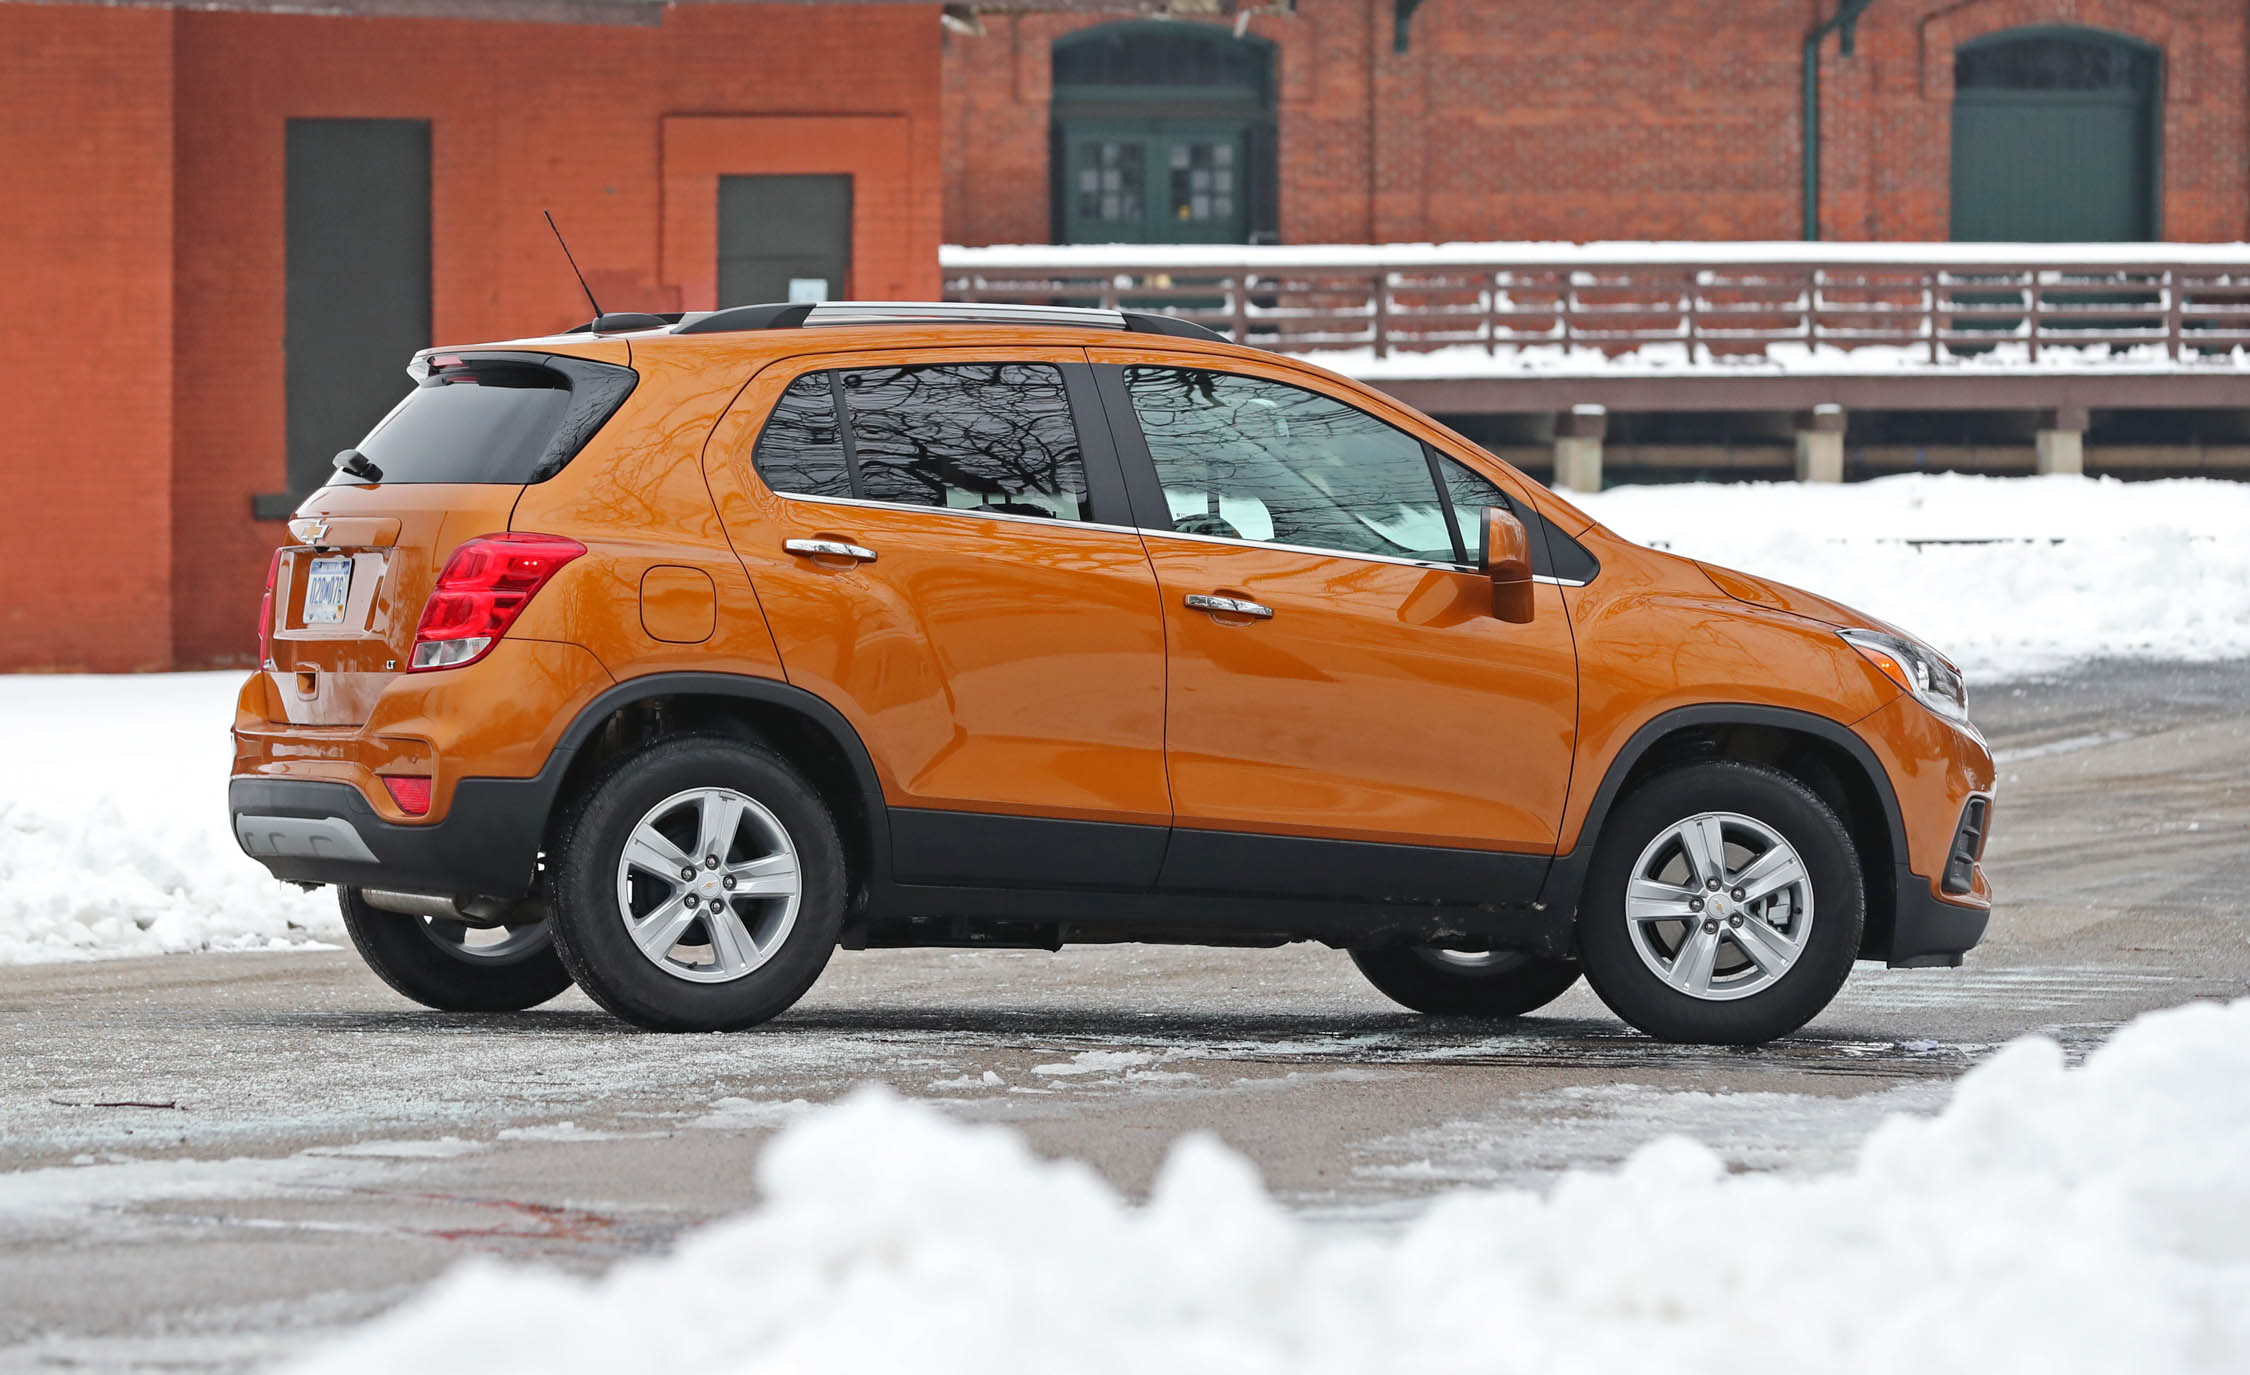 2017 Chevrolet Trax Exterior Side And Rear (View 43 of 47)